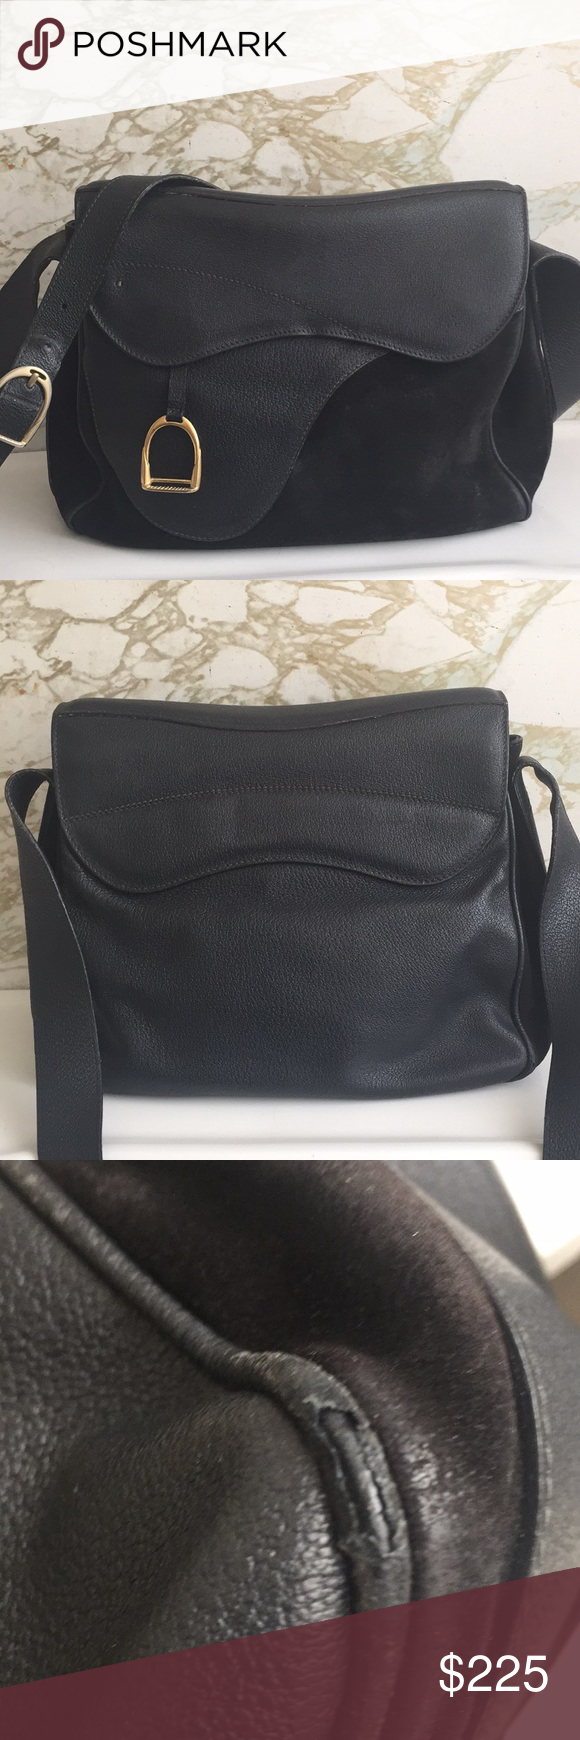 5fb39b4dc8b0 Gucci vintage saddle equestrian bag #001-58-1563 This bag is awesome! It is  older and has wear as pictured. It is suede and leather with gold plated  stirrup ...